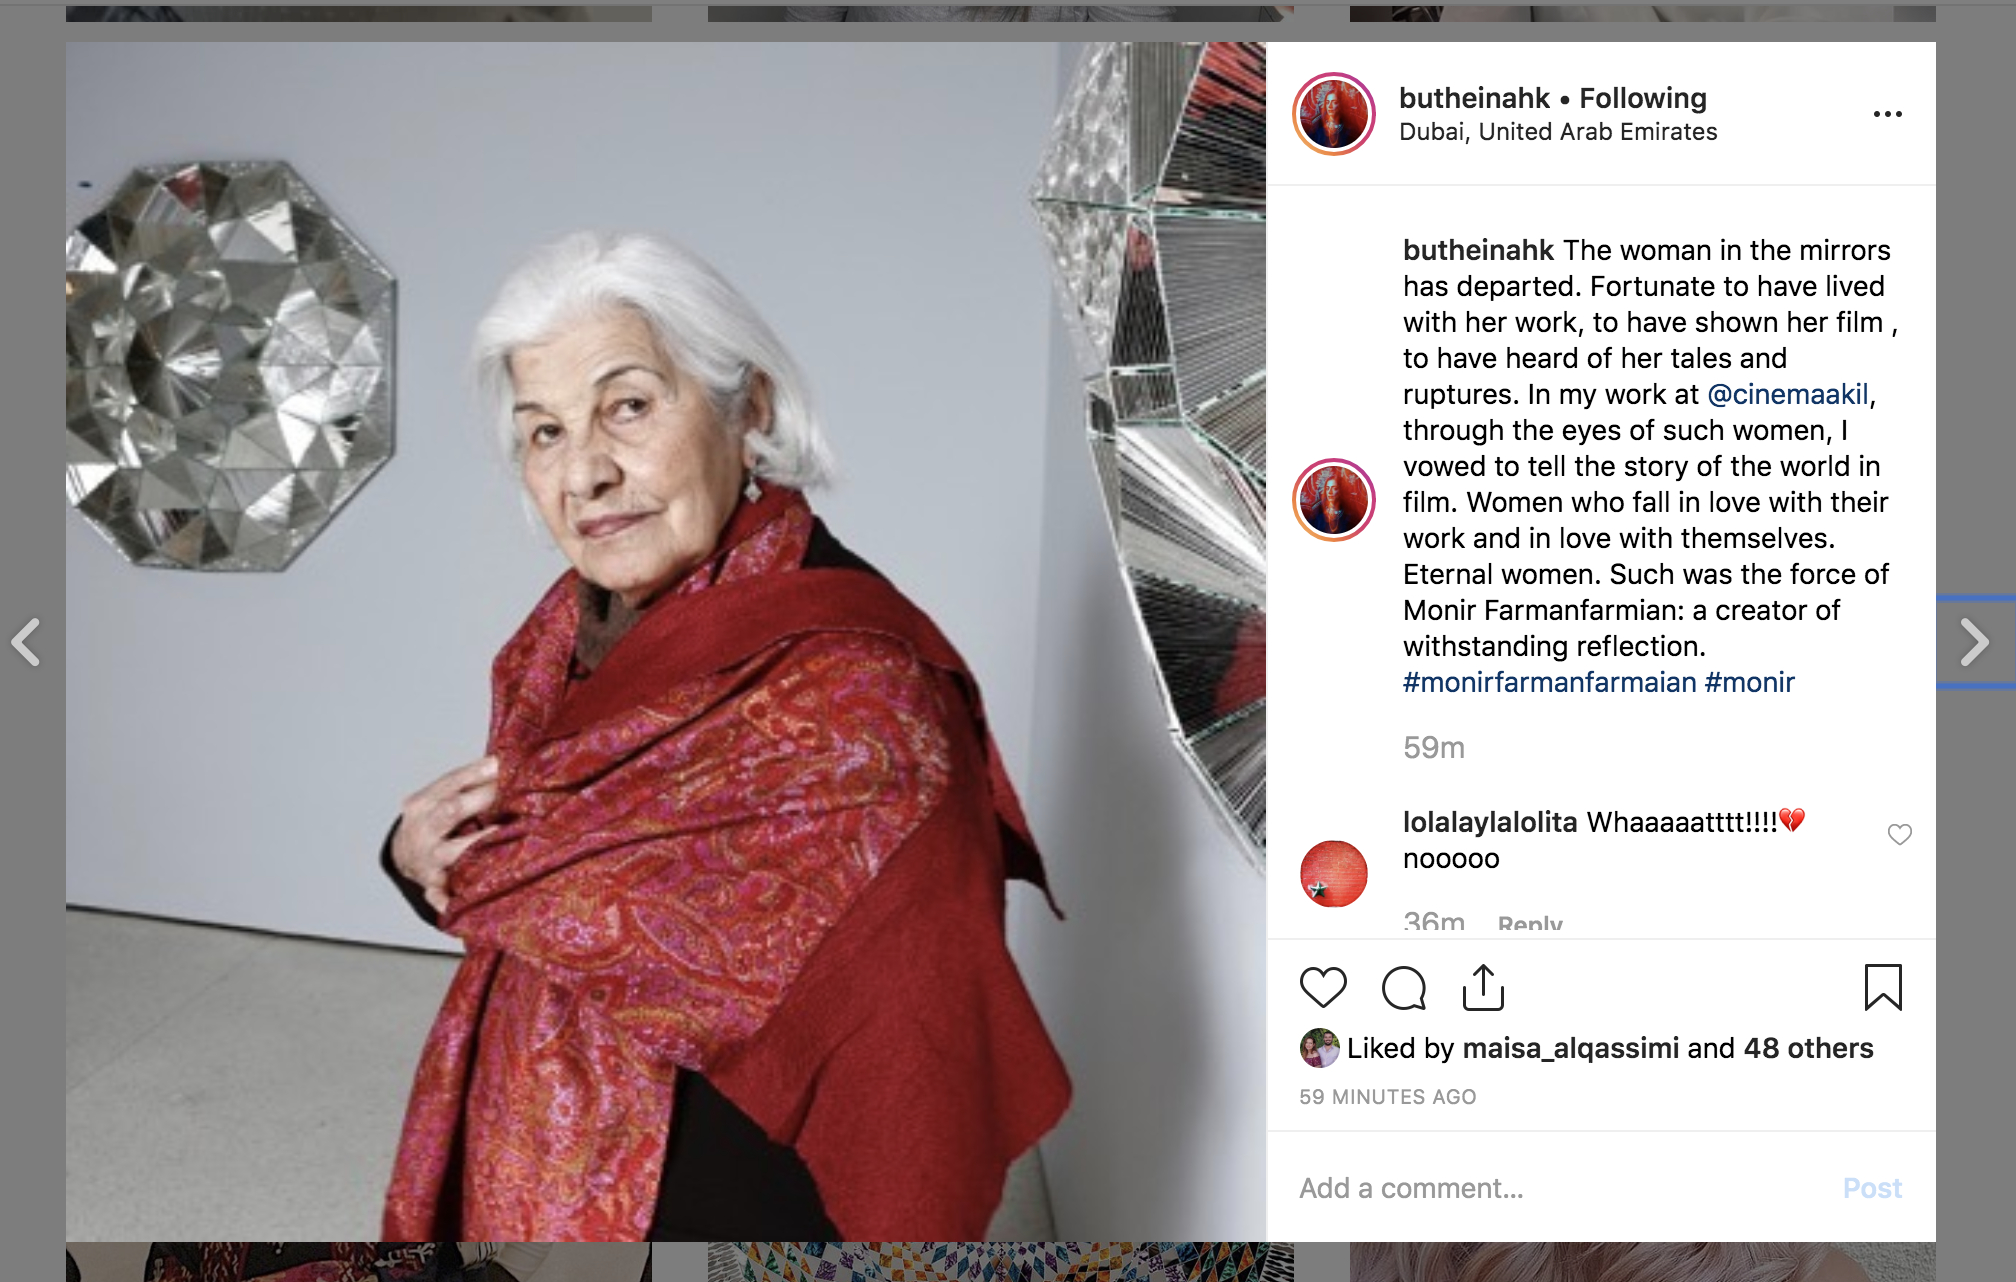 Butheina Kazim, founder of Cinema Akil pays tribute to the 'woman in the mirrors'. Screenshot taken from Instagram.